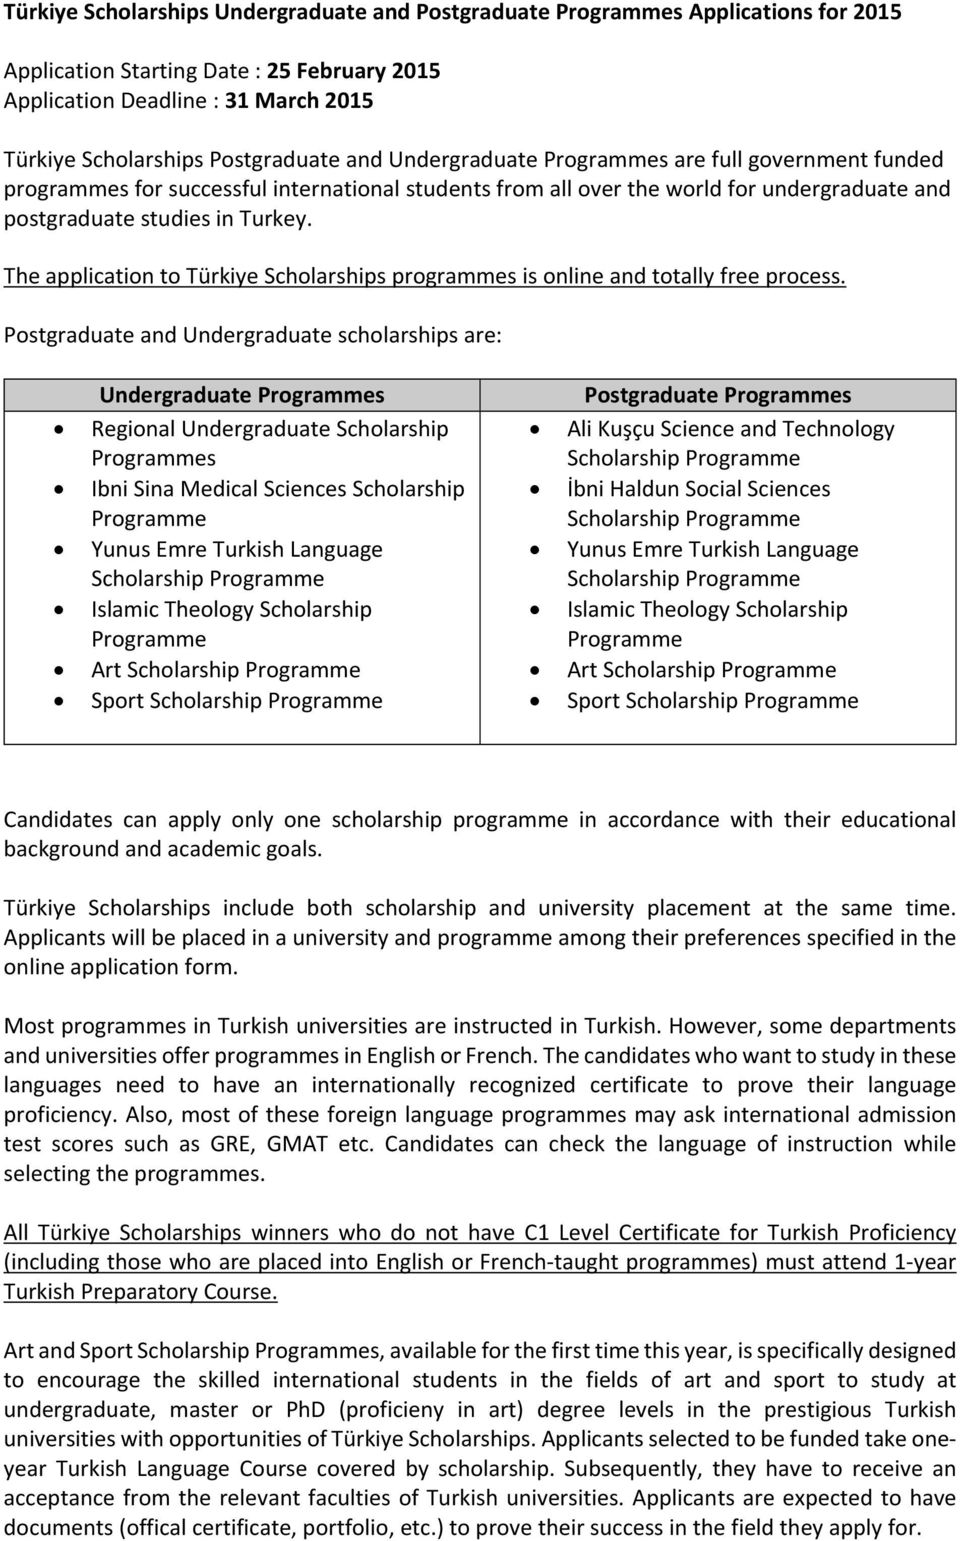 The application to Türkiye Scholarships programmes is online and totally free process.